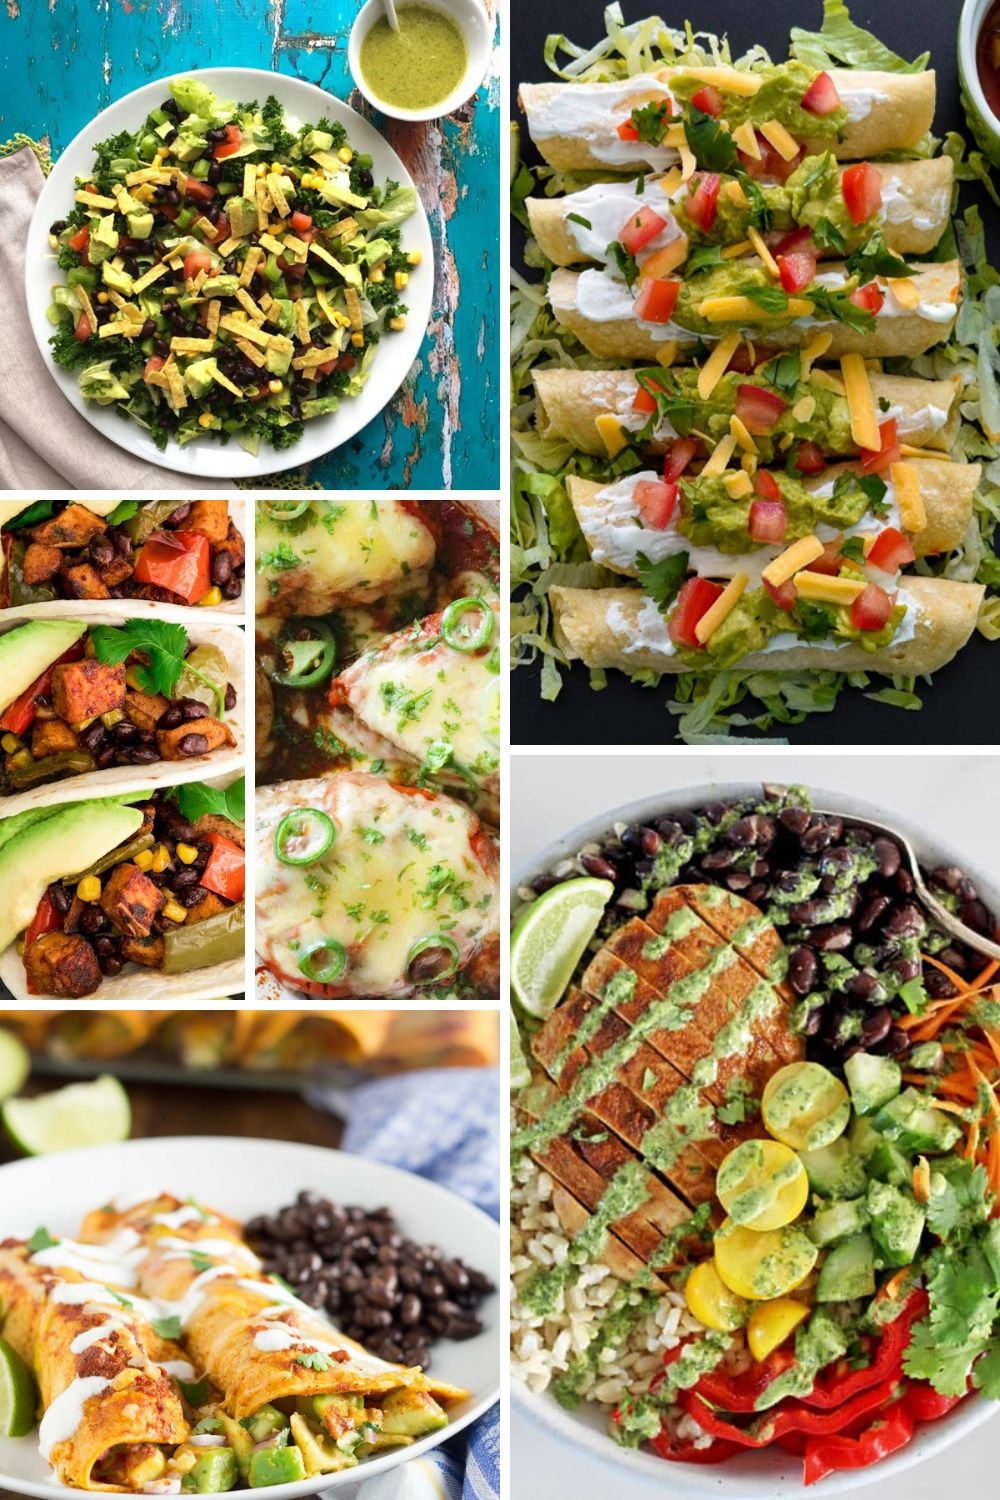 Ditch the takeout and satisfy your Mexican food cravings